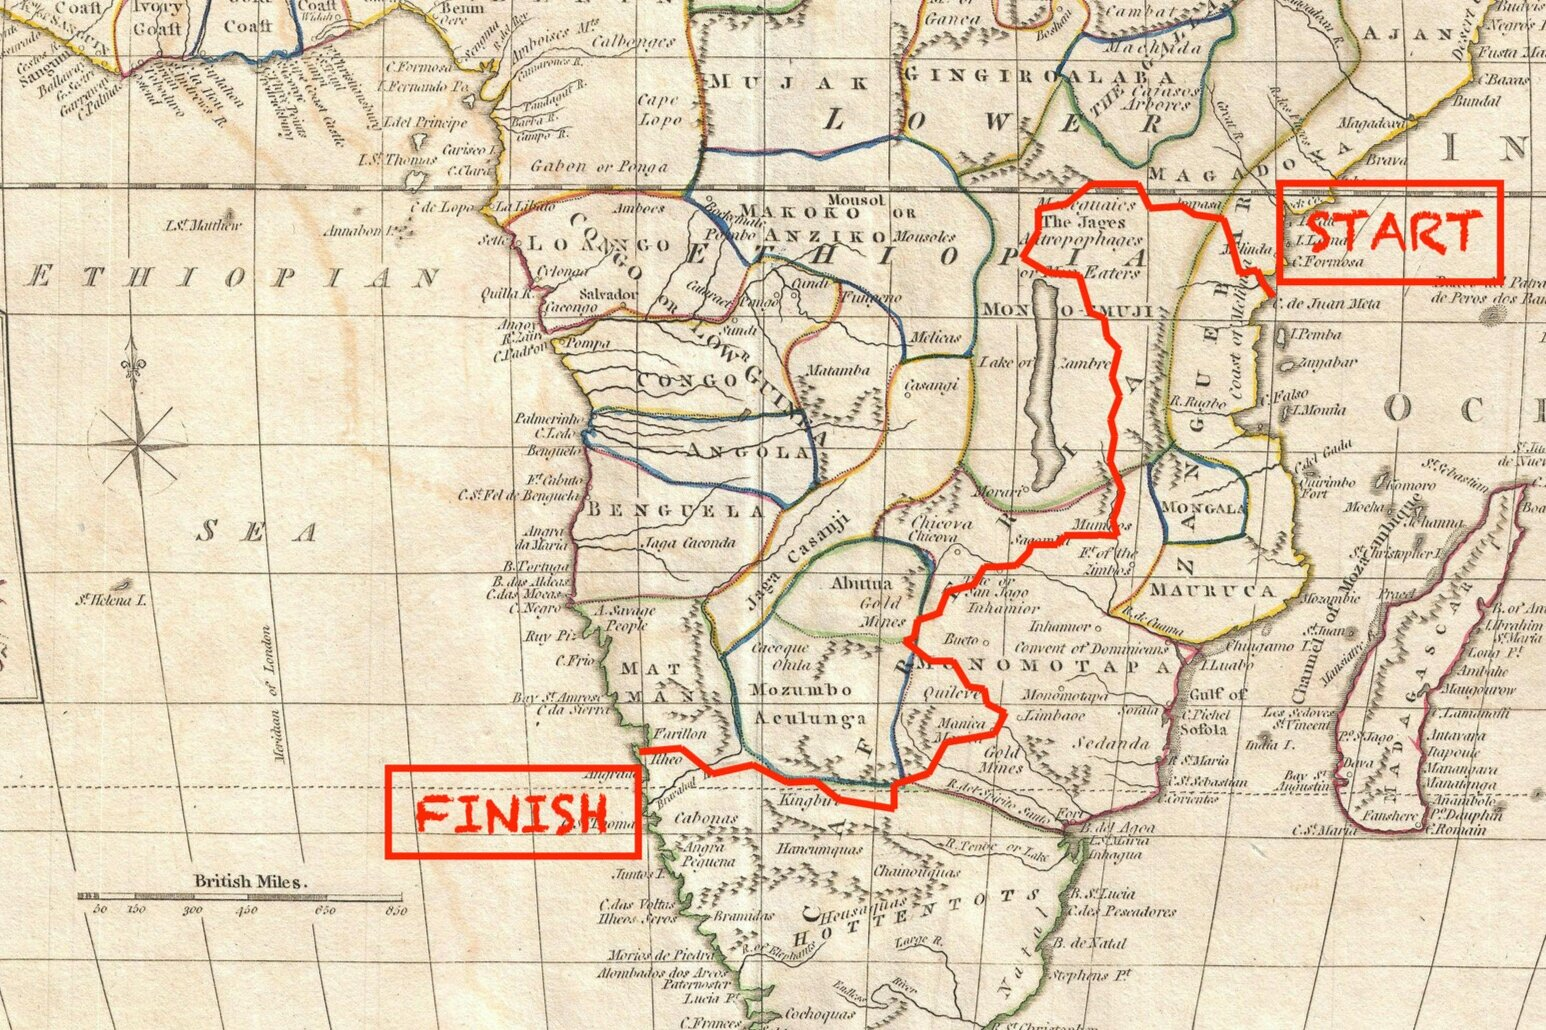 an epic 4,500 mile journey across africa, on foot -